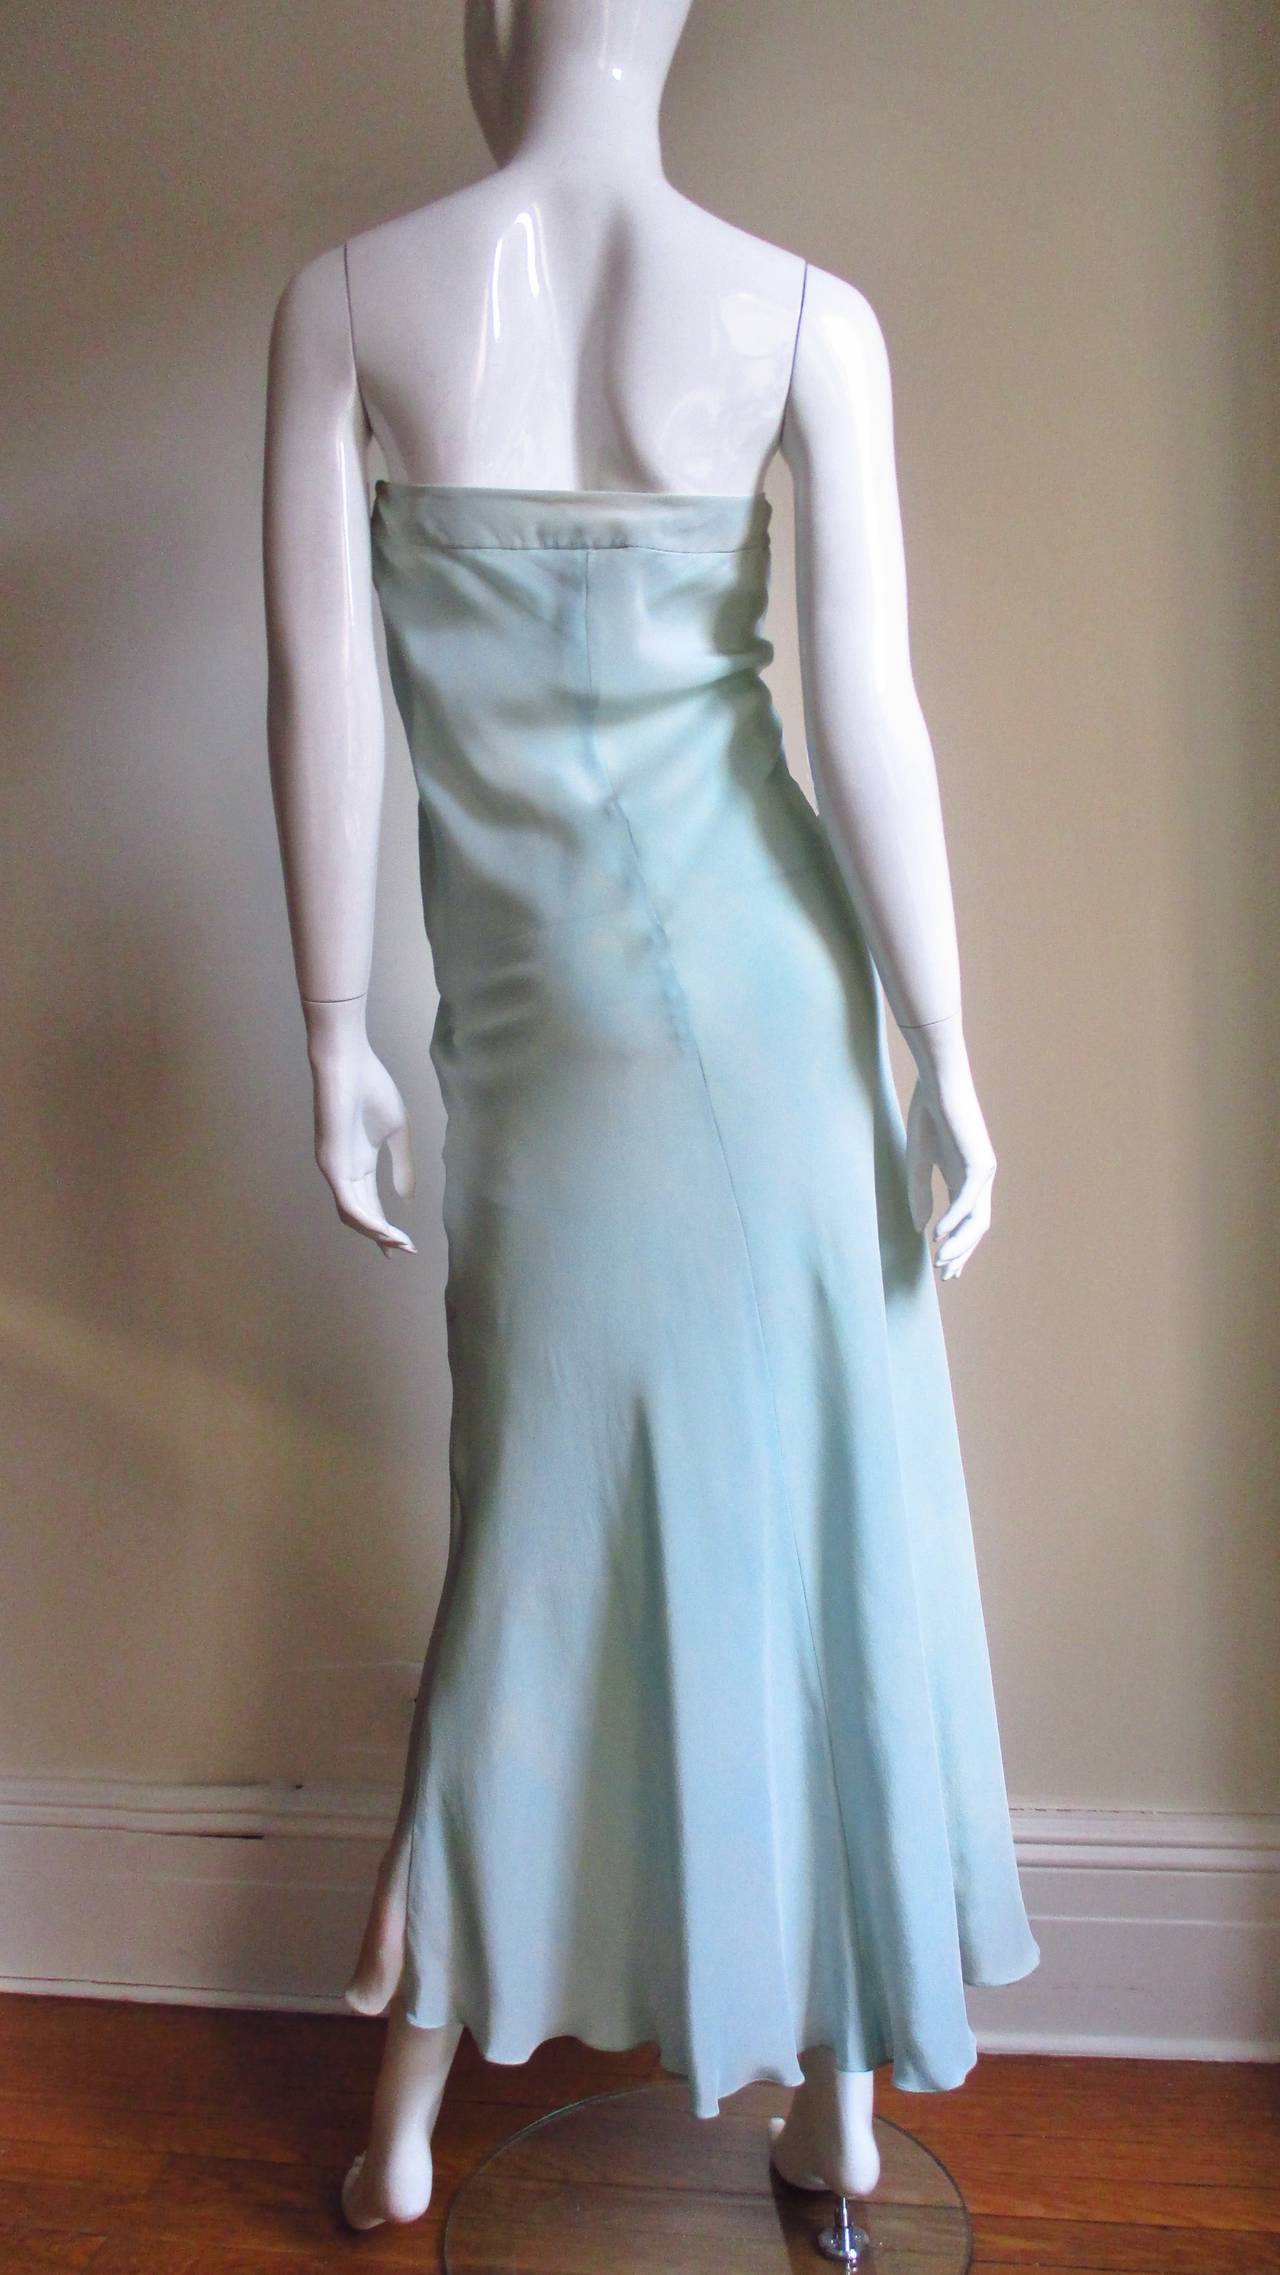 Christian Lacroix Strapless Silk Dress 8